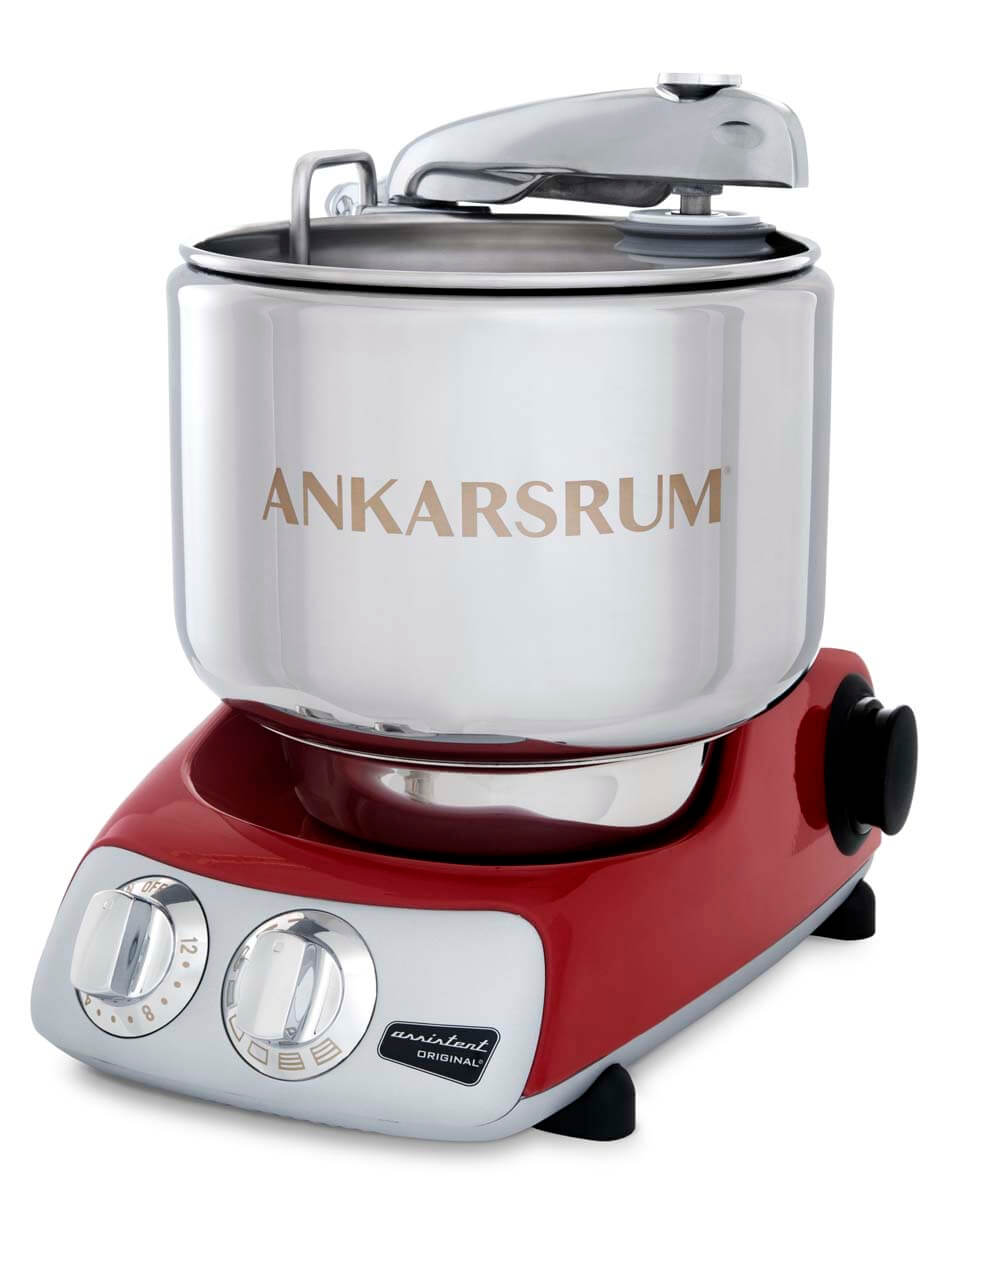 Ankarsrum Assistent Basis Red